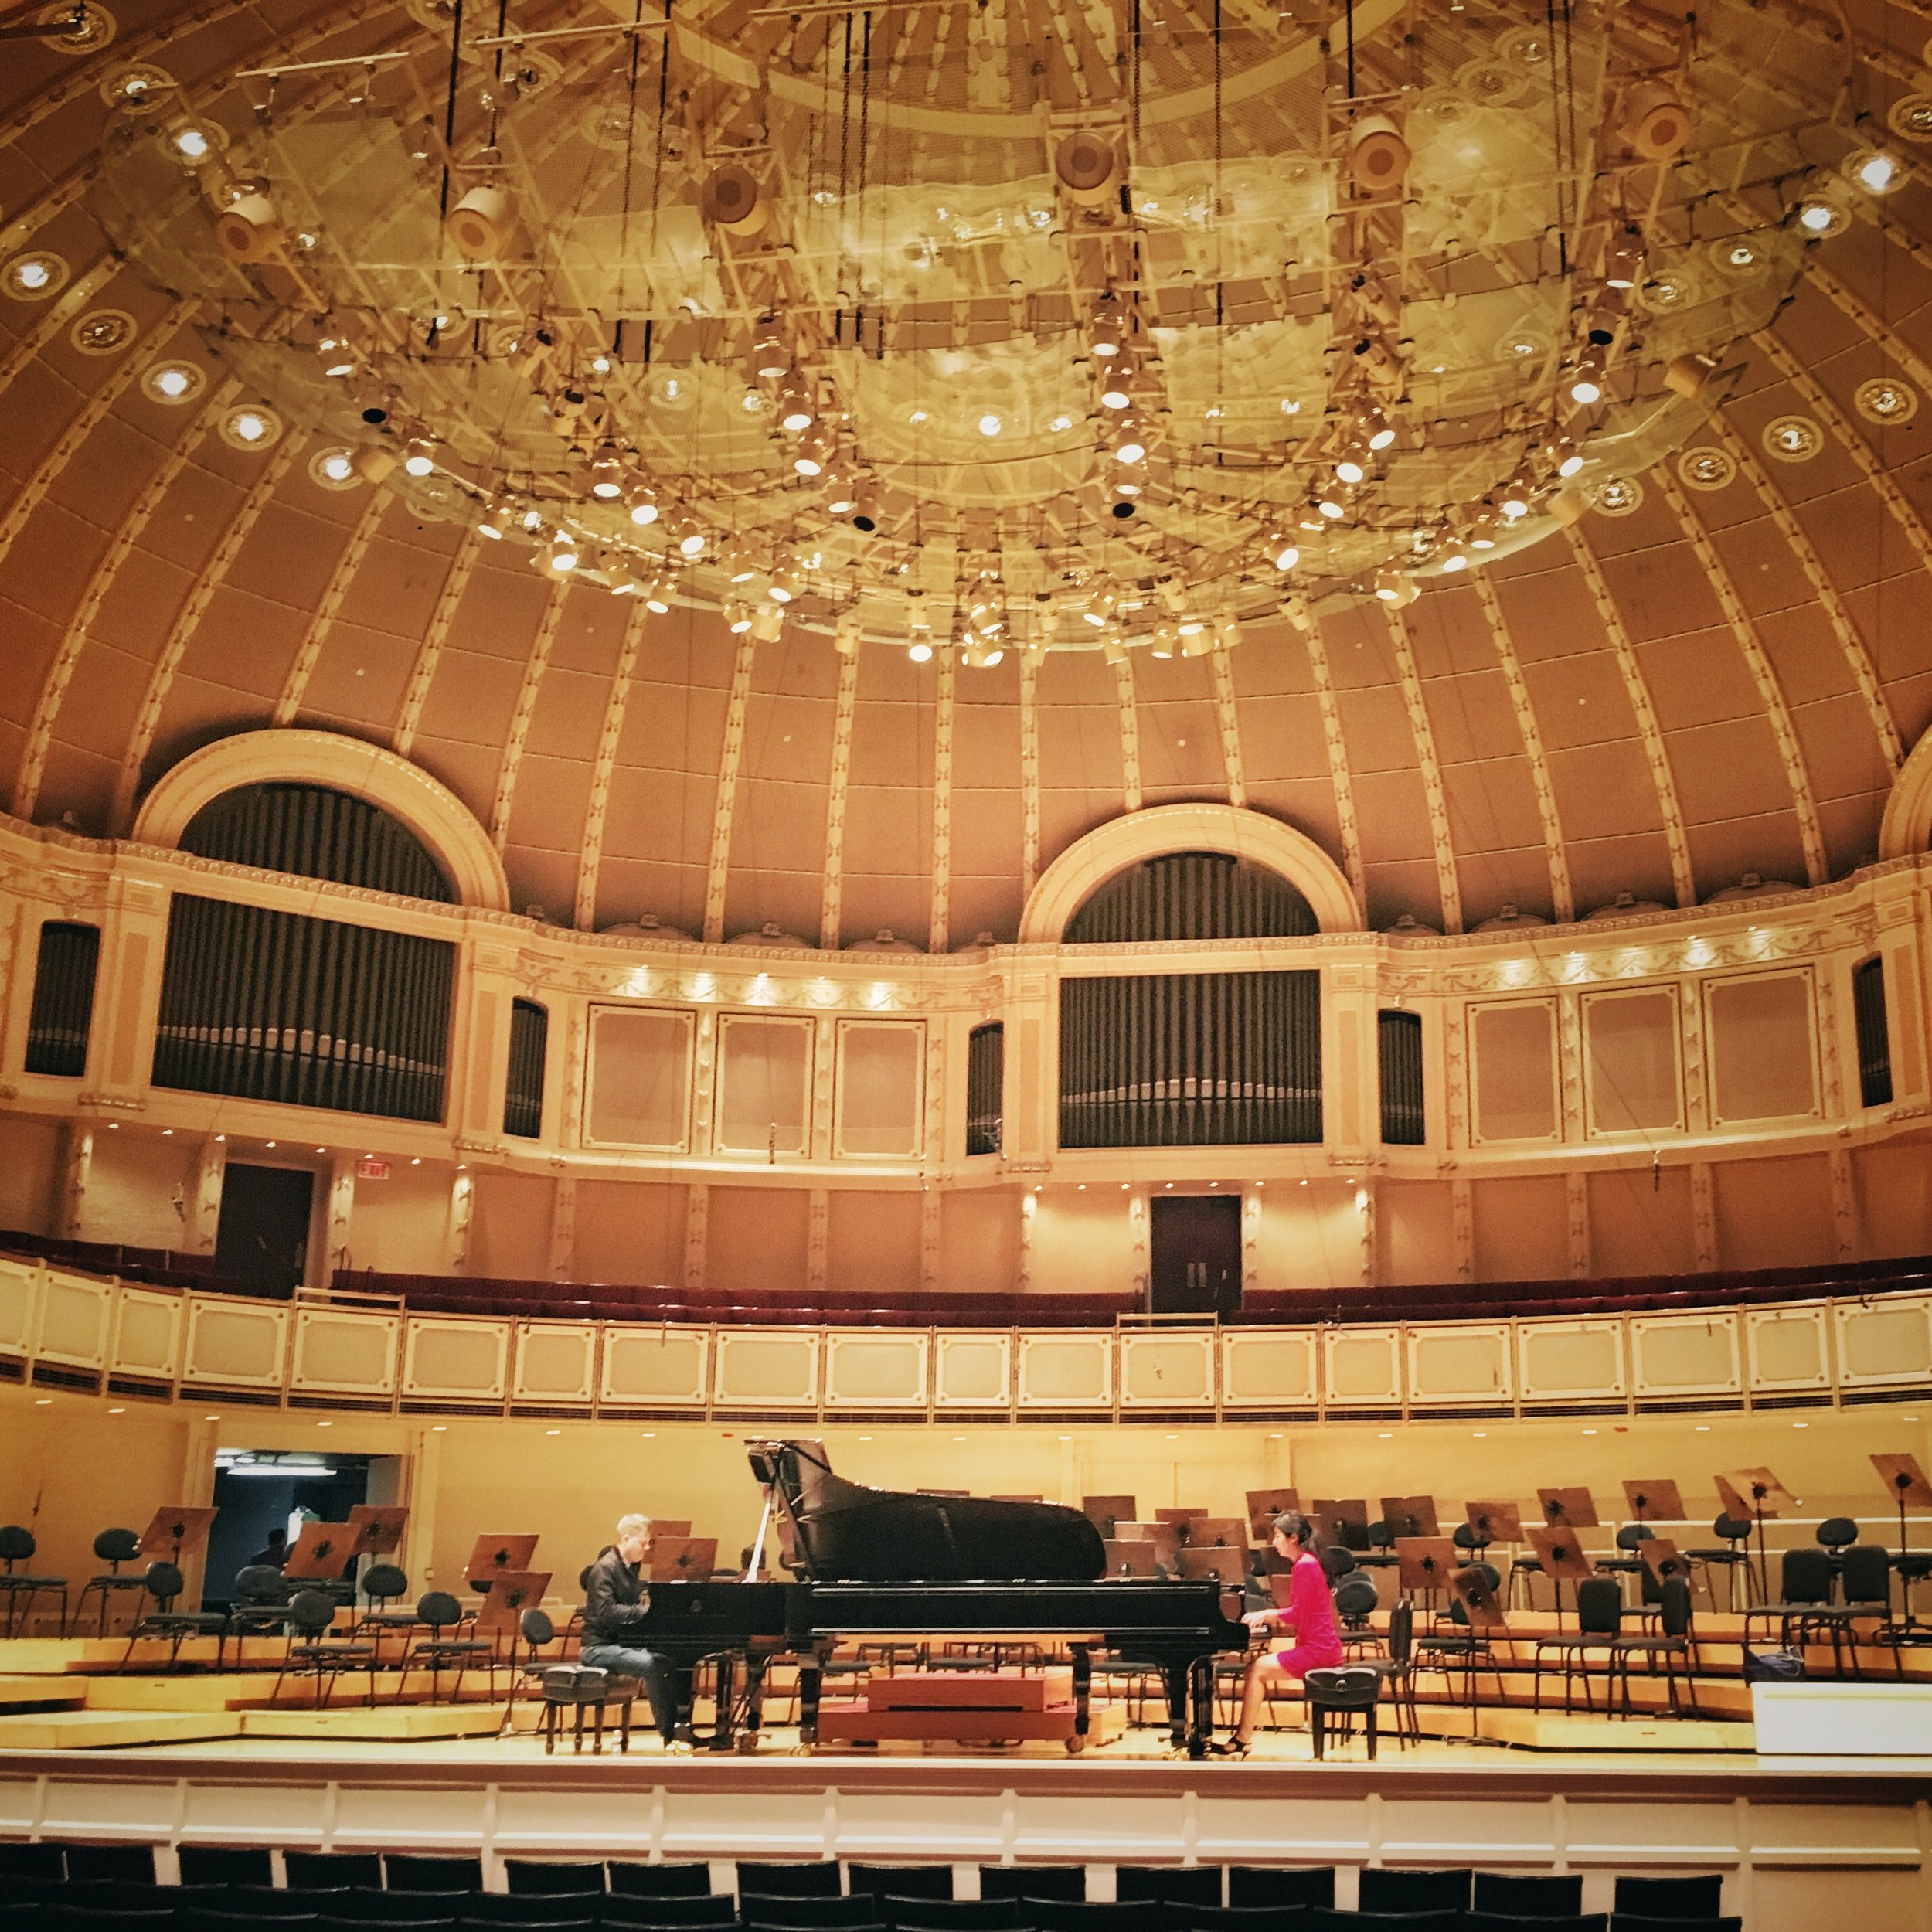 rehearsing on the storied stage of Orchestra Hall in Chicago